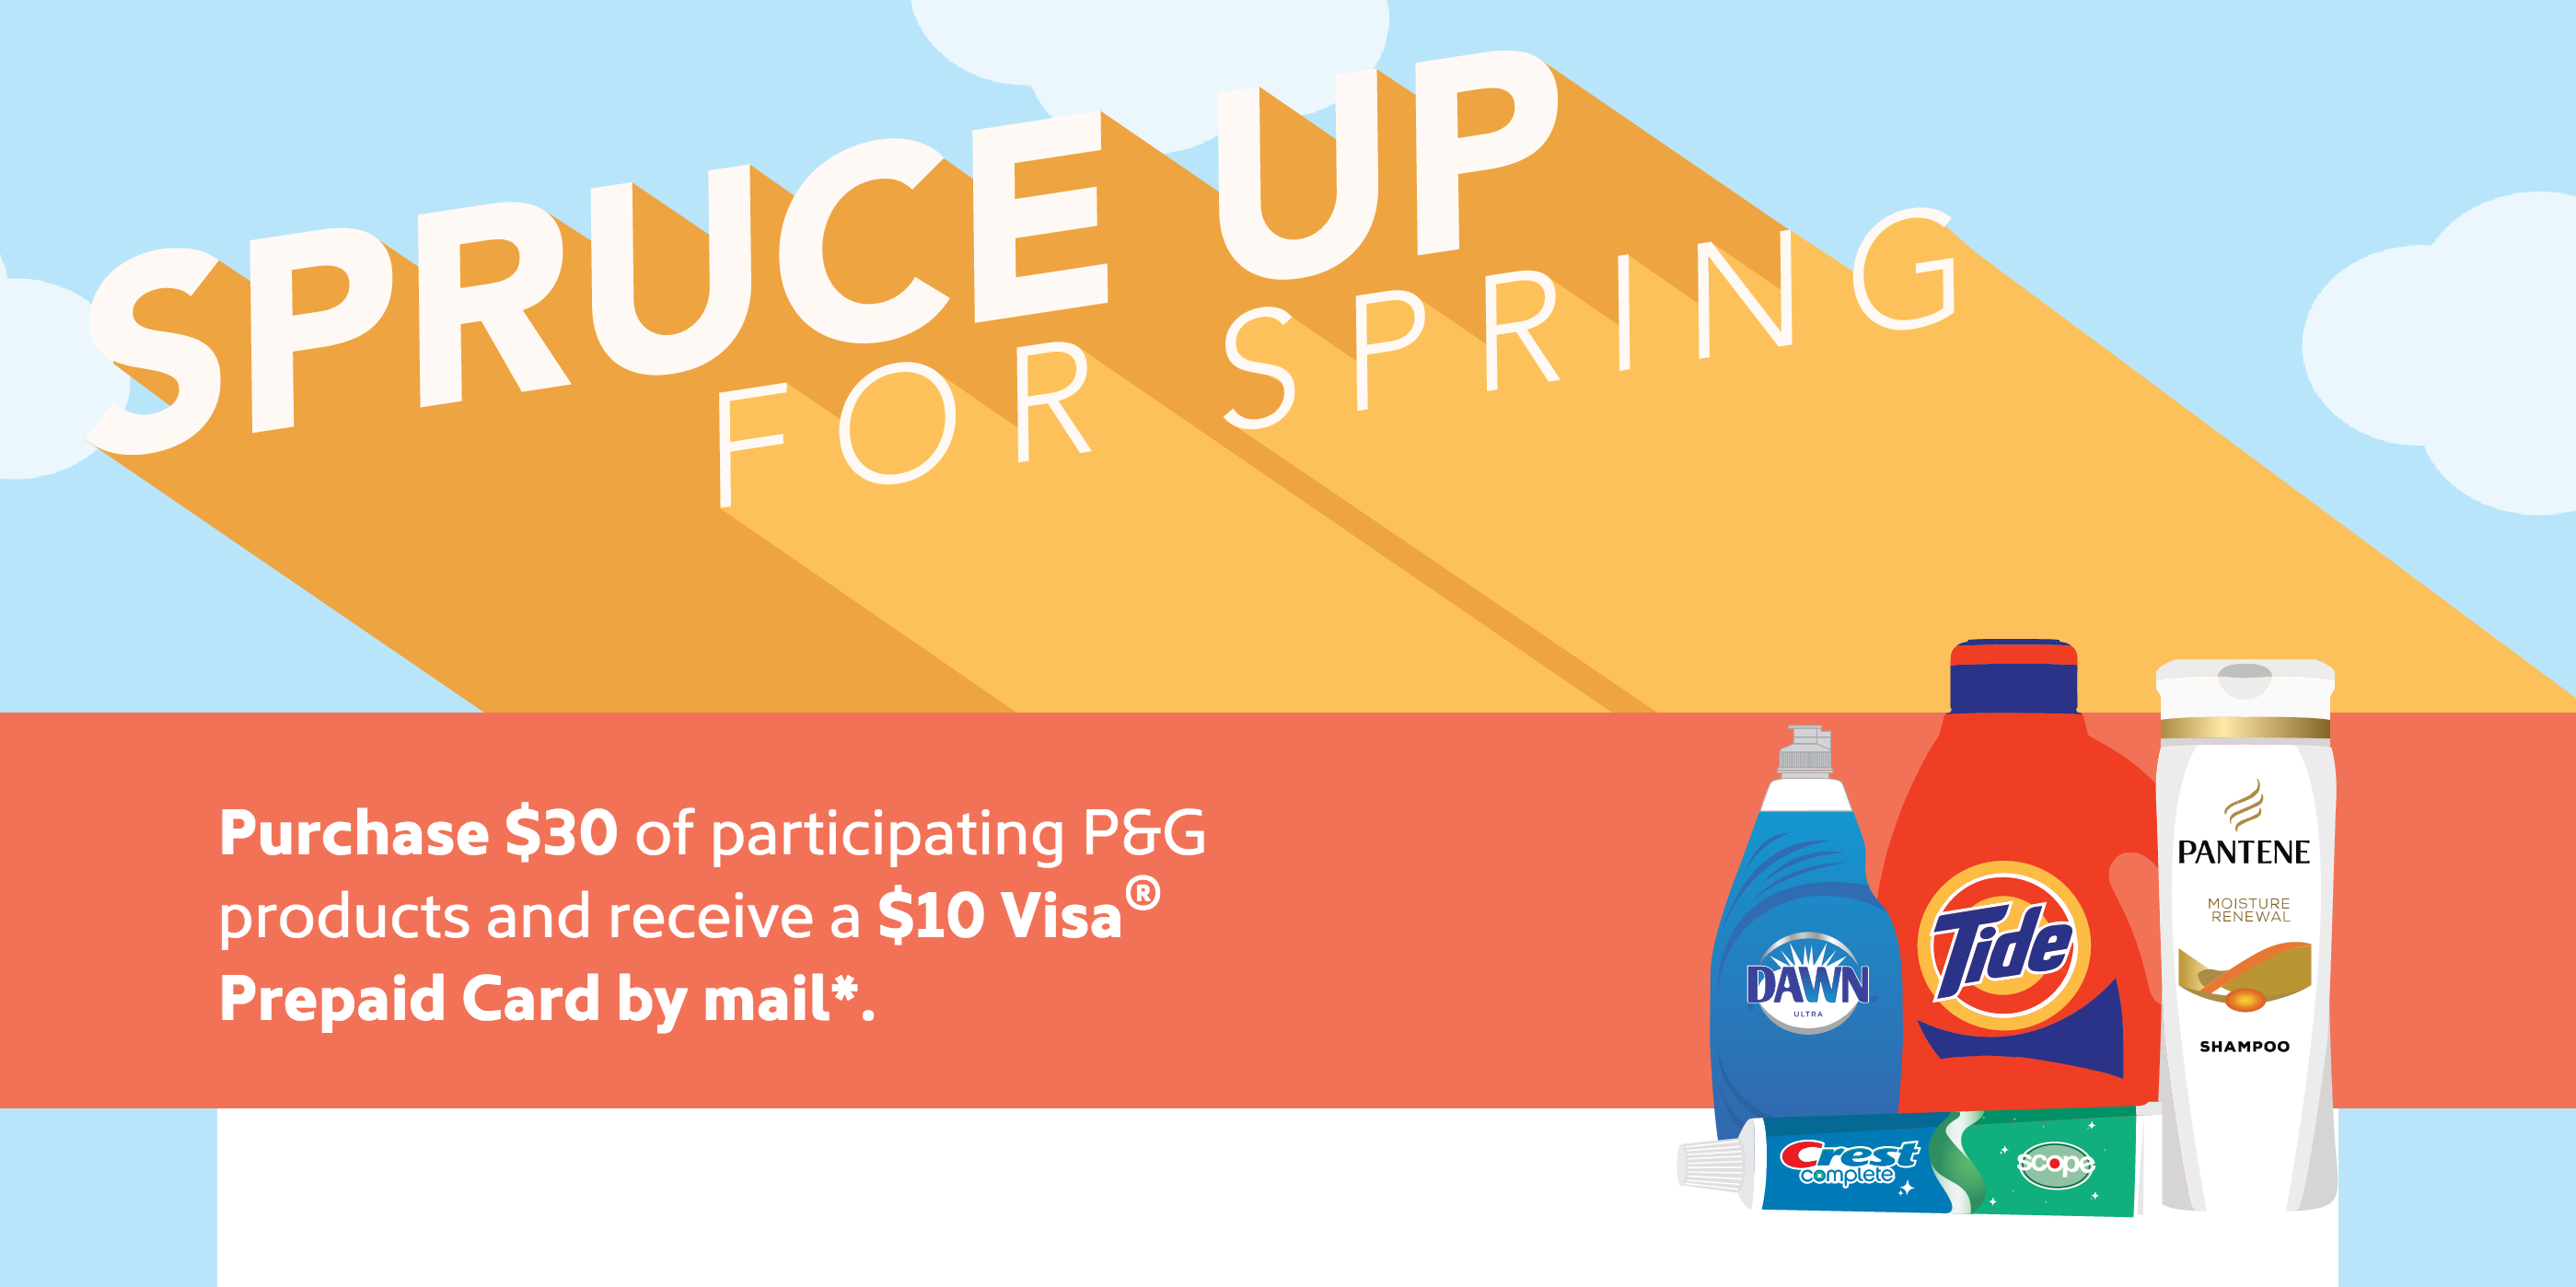 Harris Teeter P&G Spruce Up for Spring Gift Card Promo - The ...